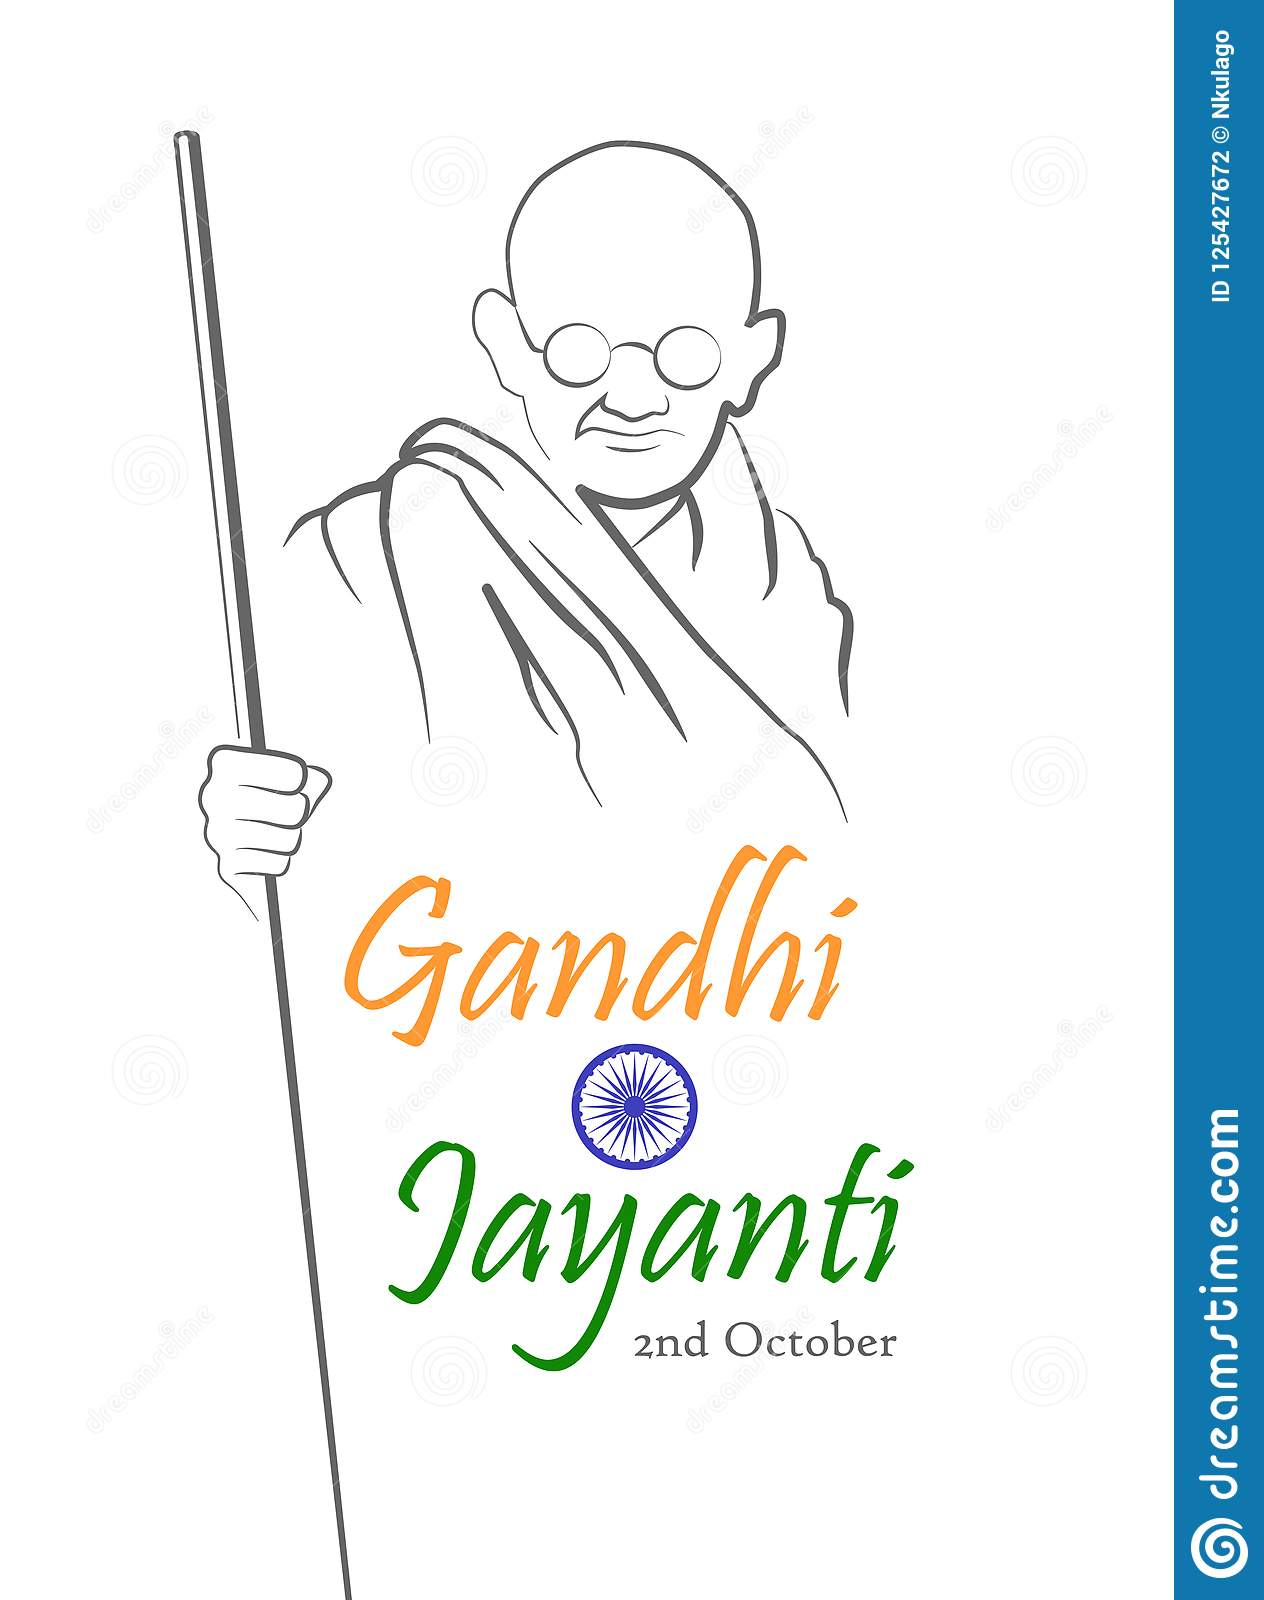 Gandhi jayanti abstract sketch of mahatma gandhi with inscription in shape of the indian flag